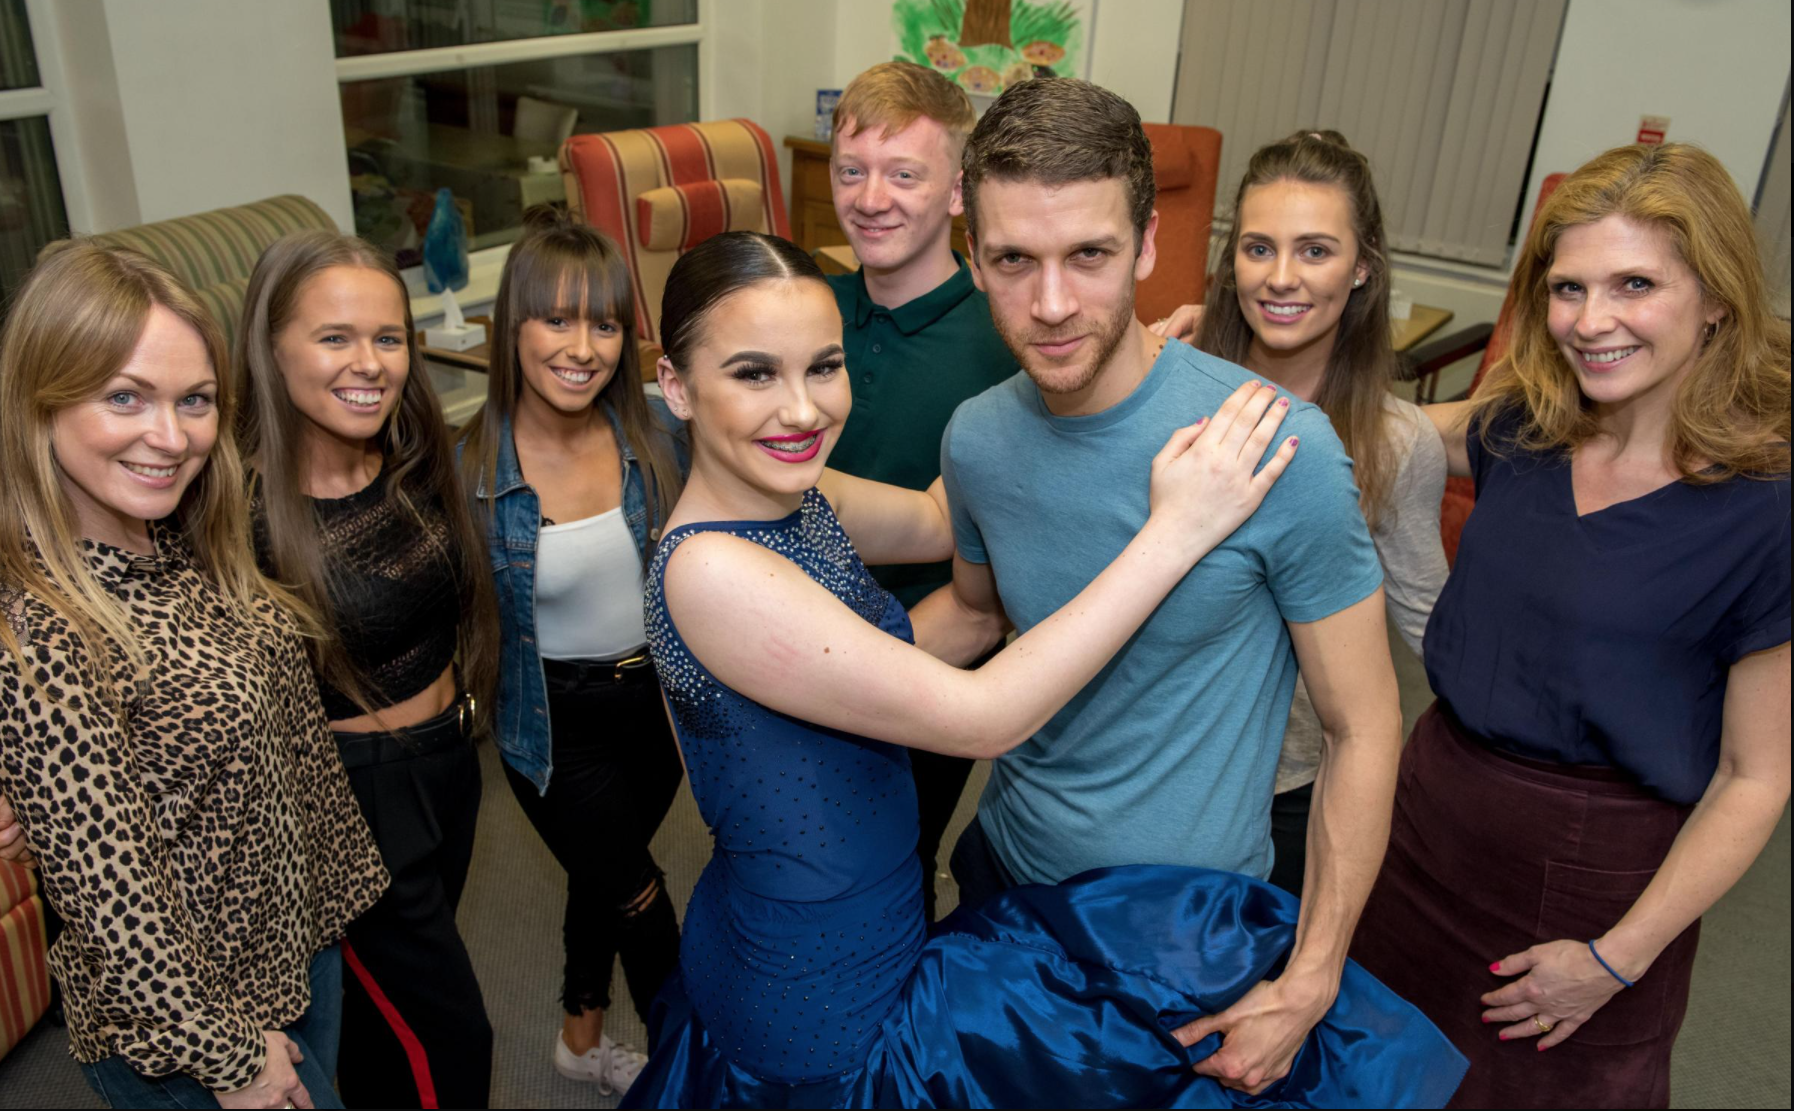 Emmerdale News: Emmerdale Stars take to the dancefloor for a 'Knight of Dance'